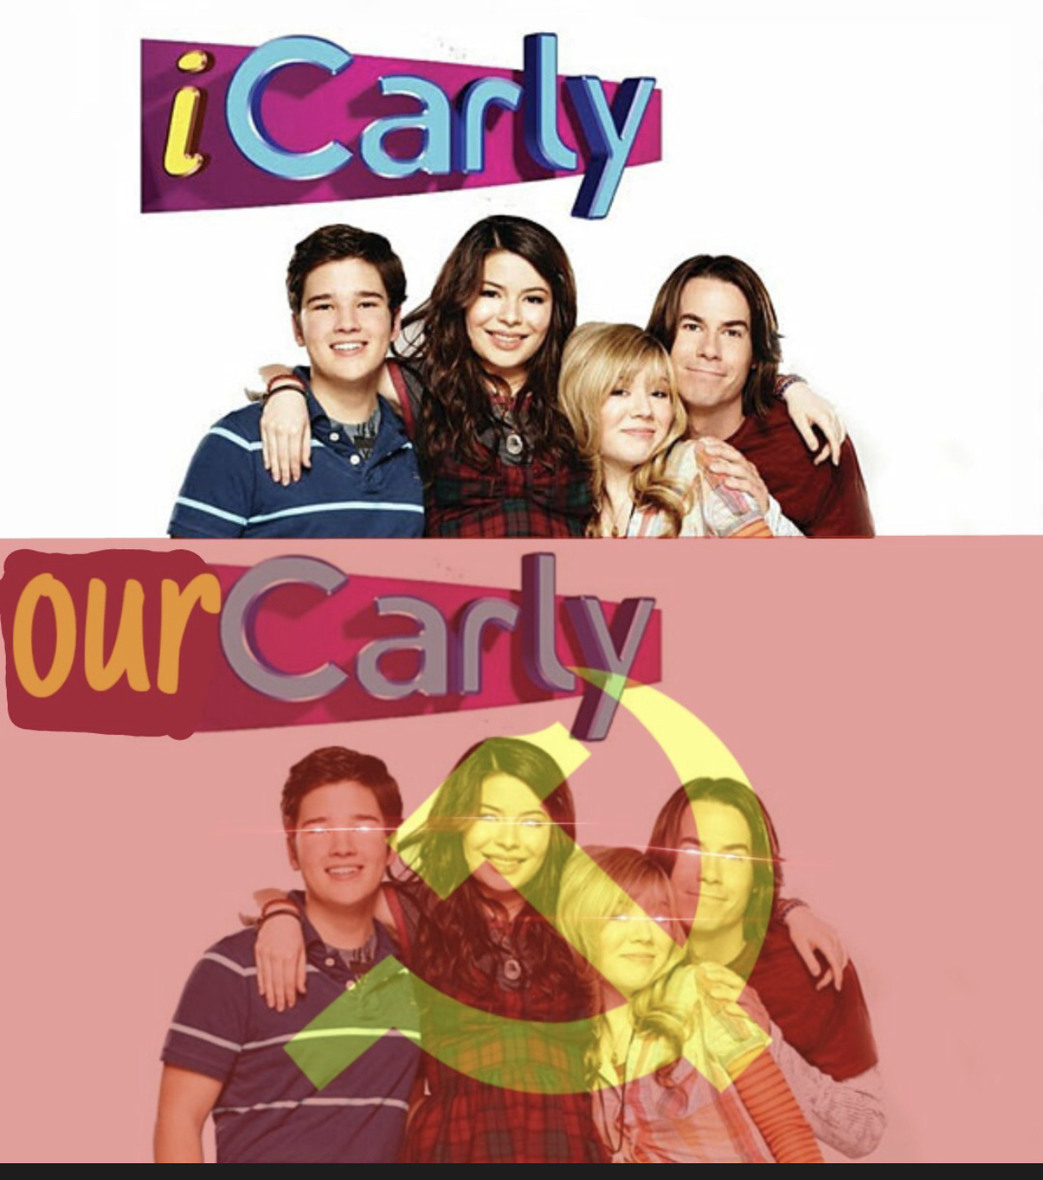 Our Carly - meme